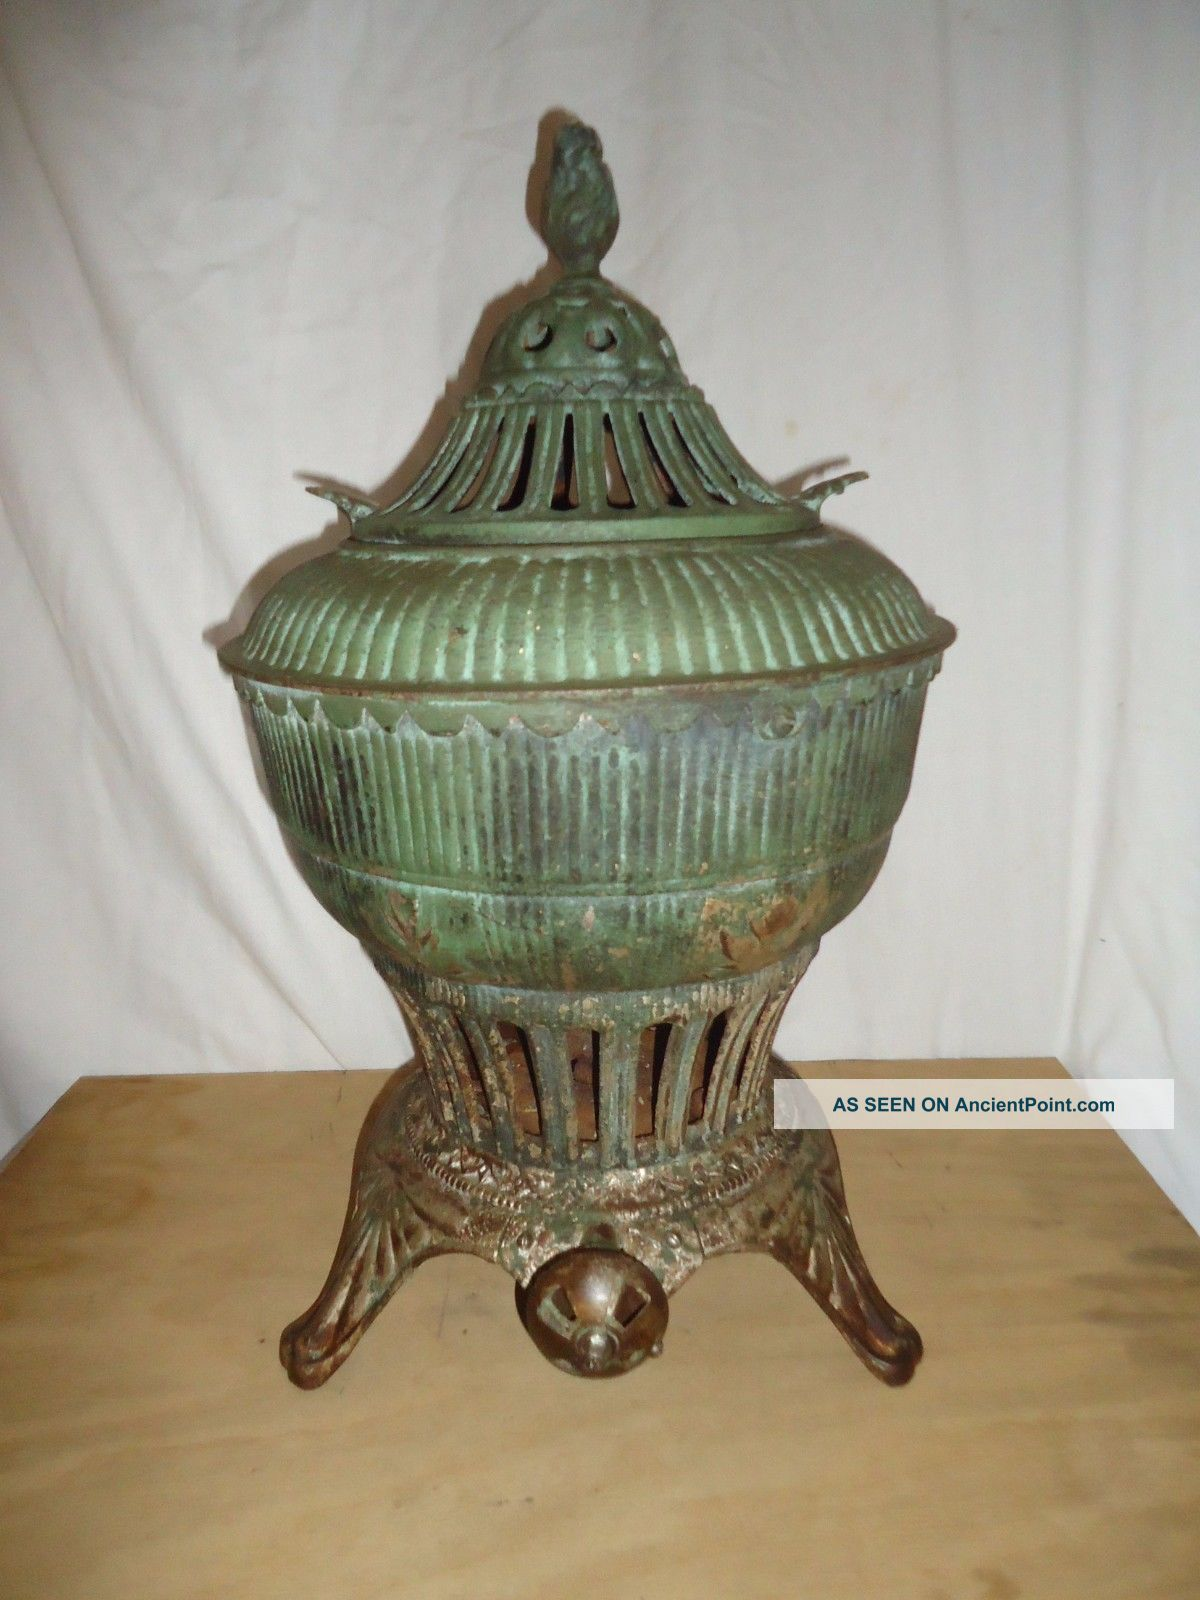 Antique Omega Gas Stove Heater,  Potbelly Urn Style Ornate Embossed Iron,  Pat 1896 Stoves photo